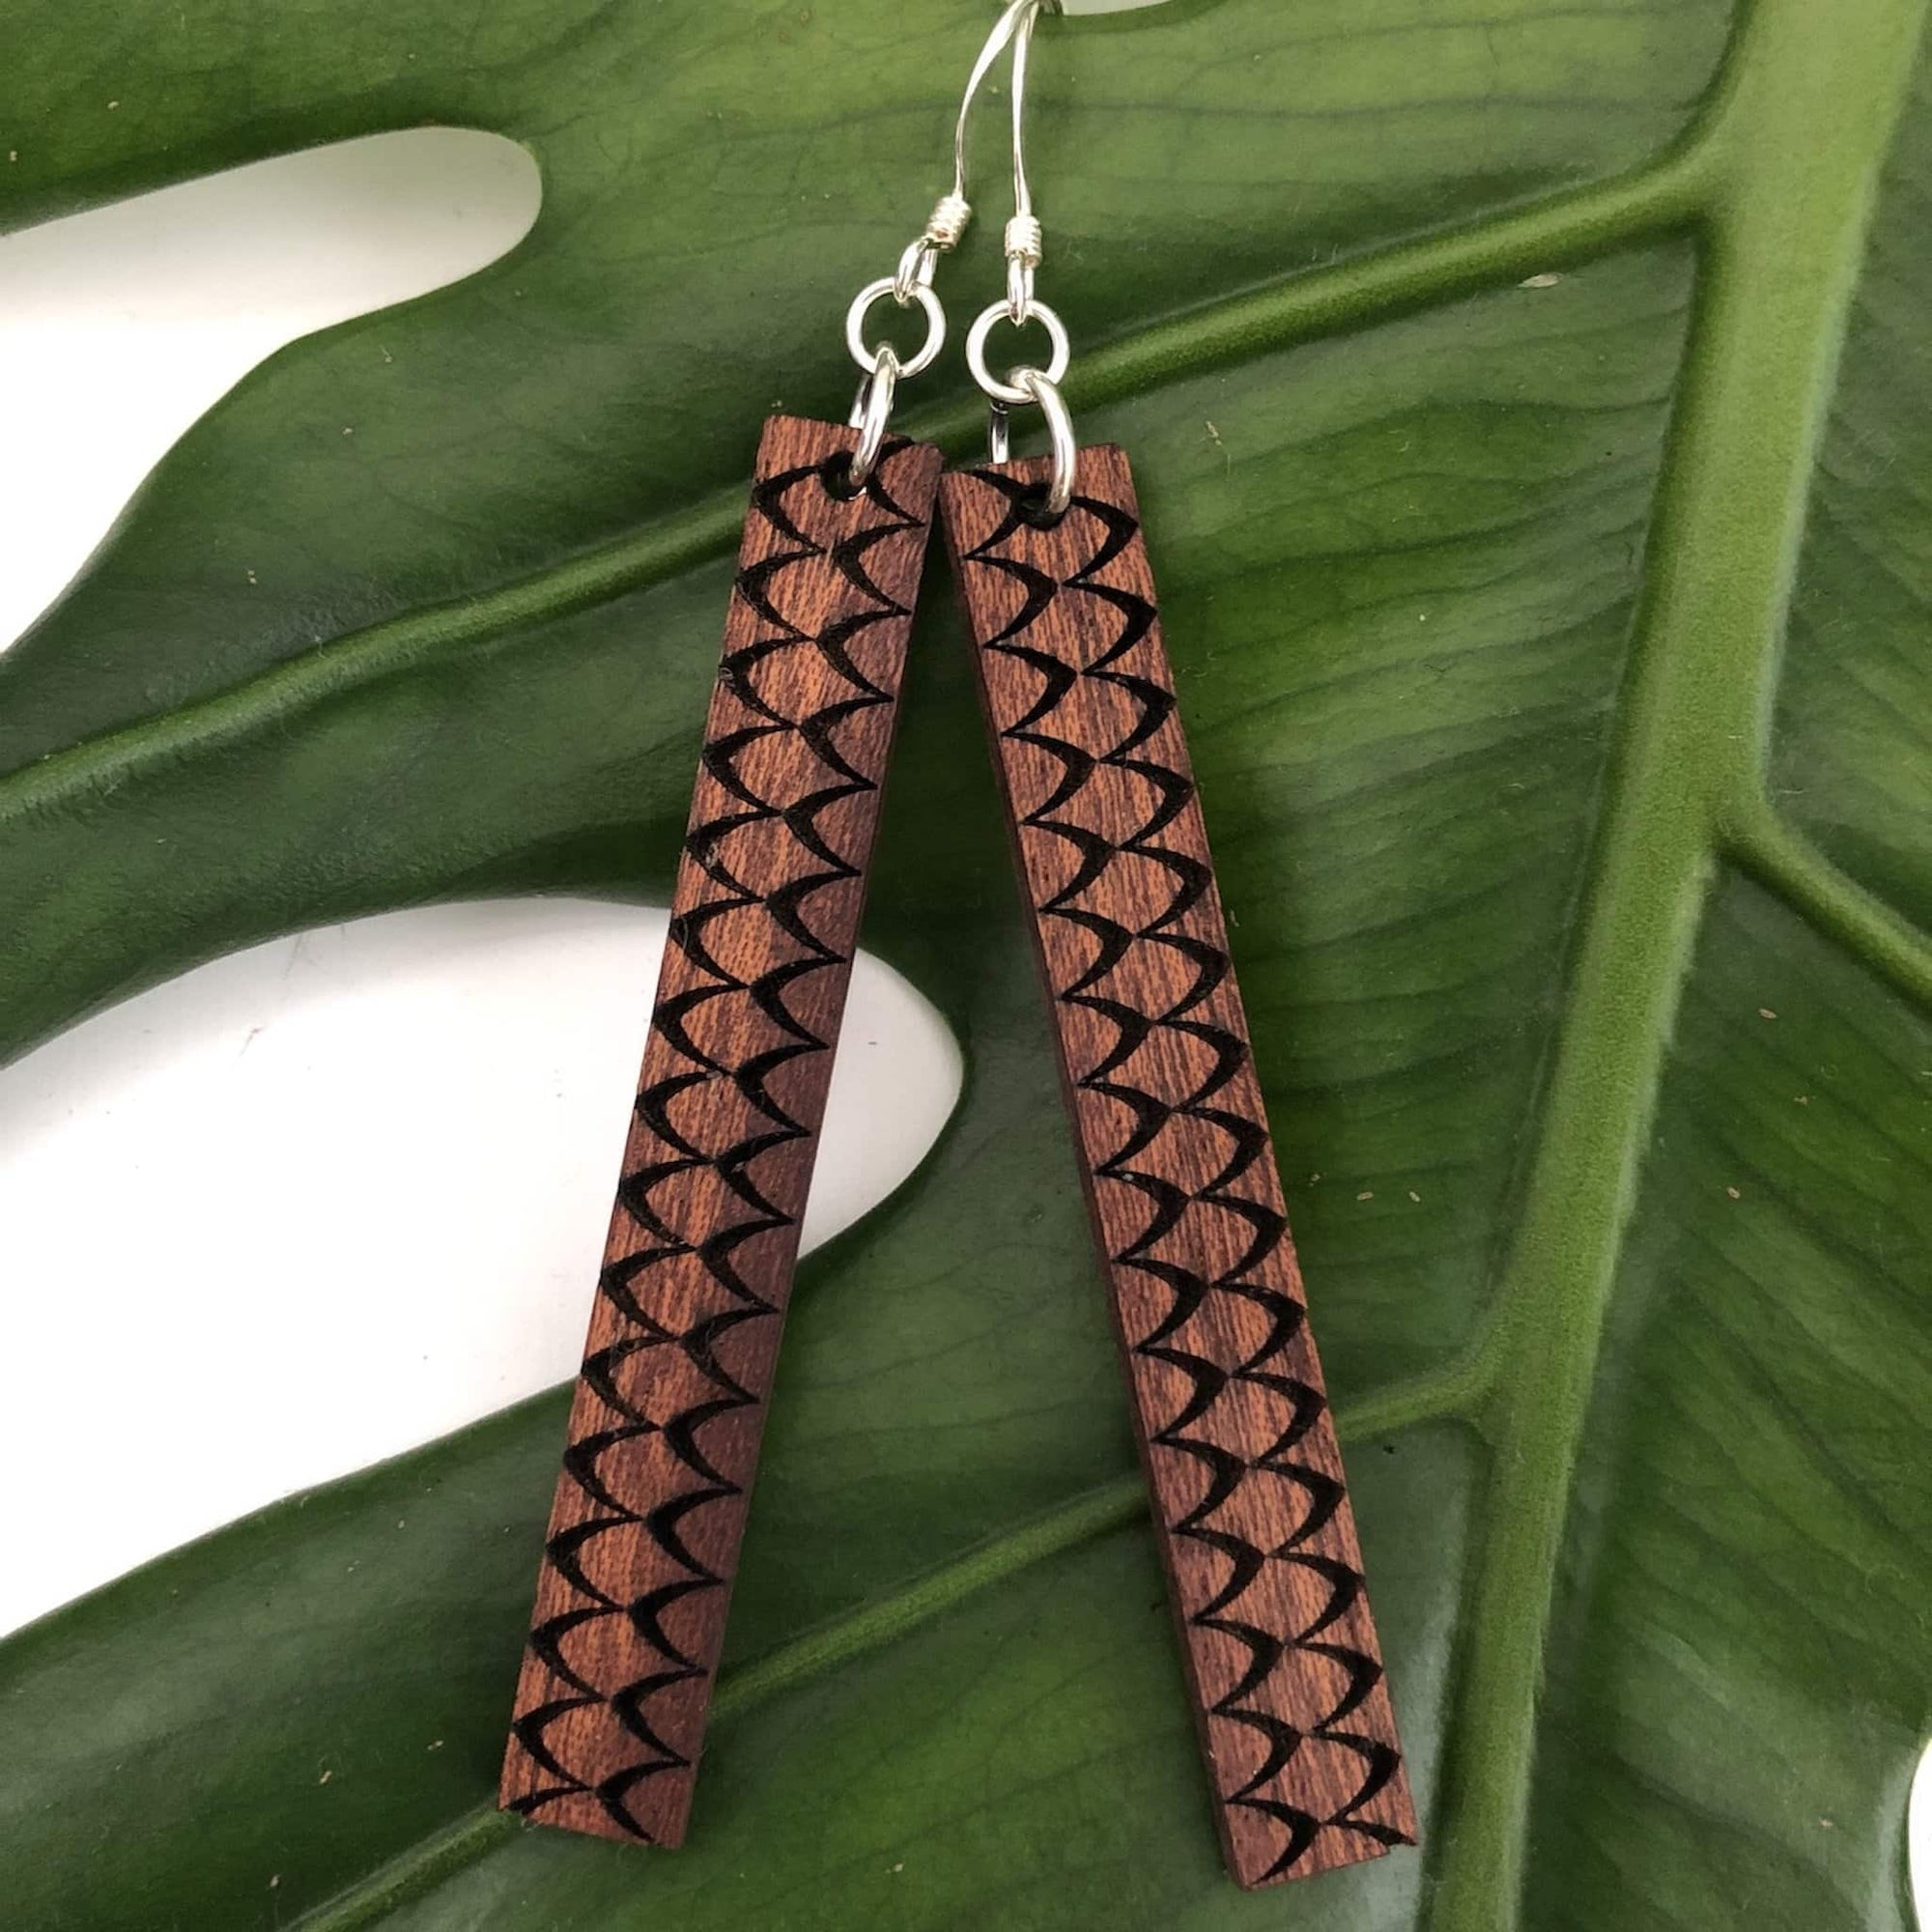 Hulu Hawaiian Koa Wood - 14k Gold filled Earrings